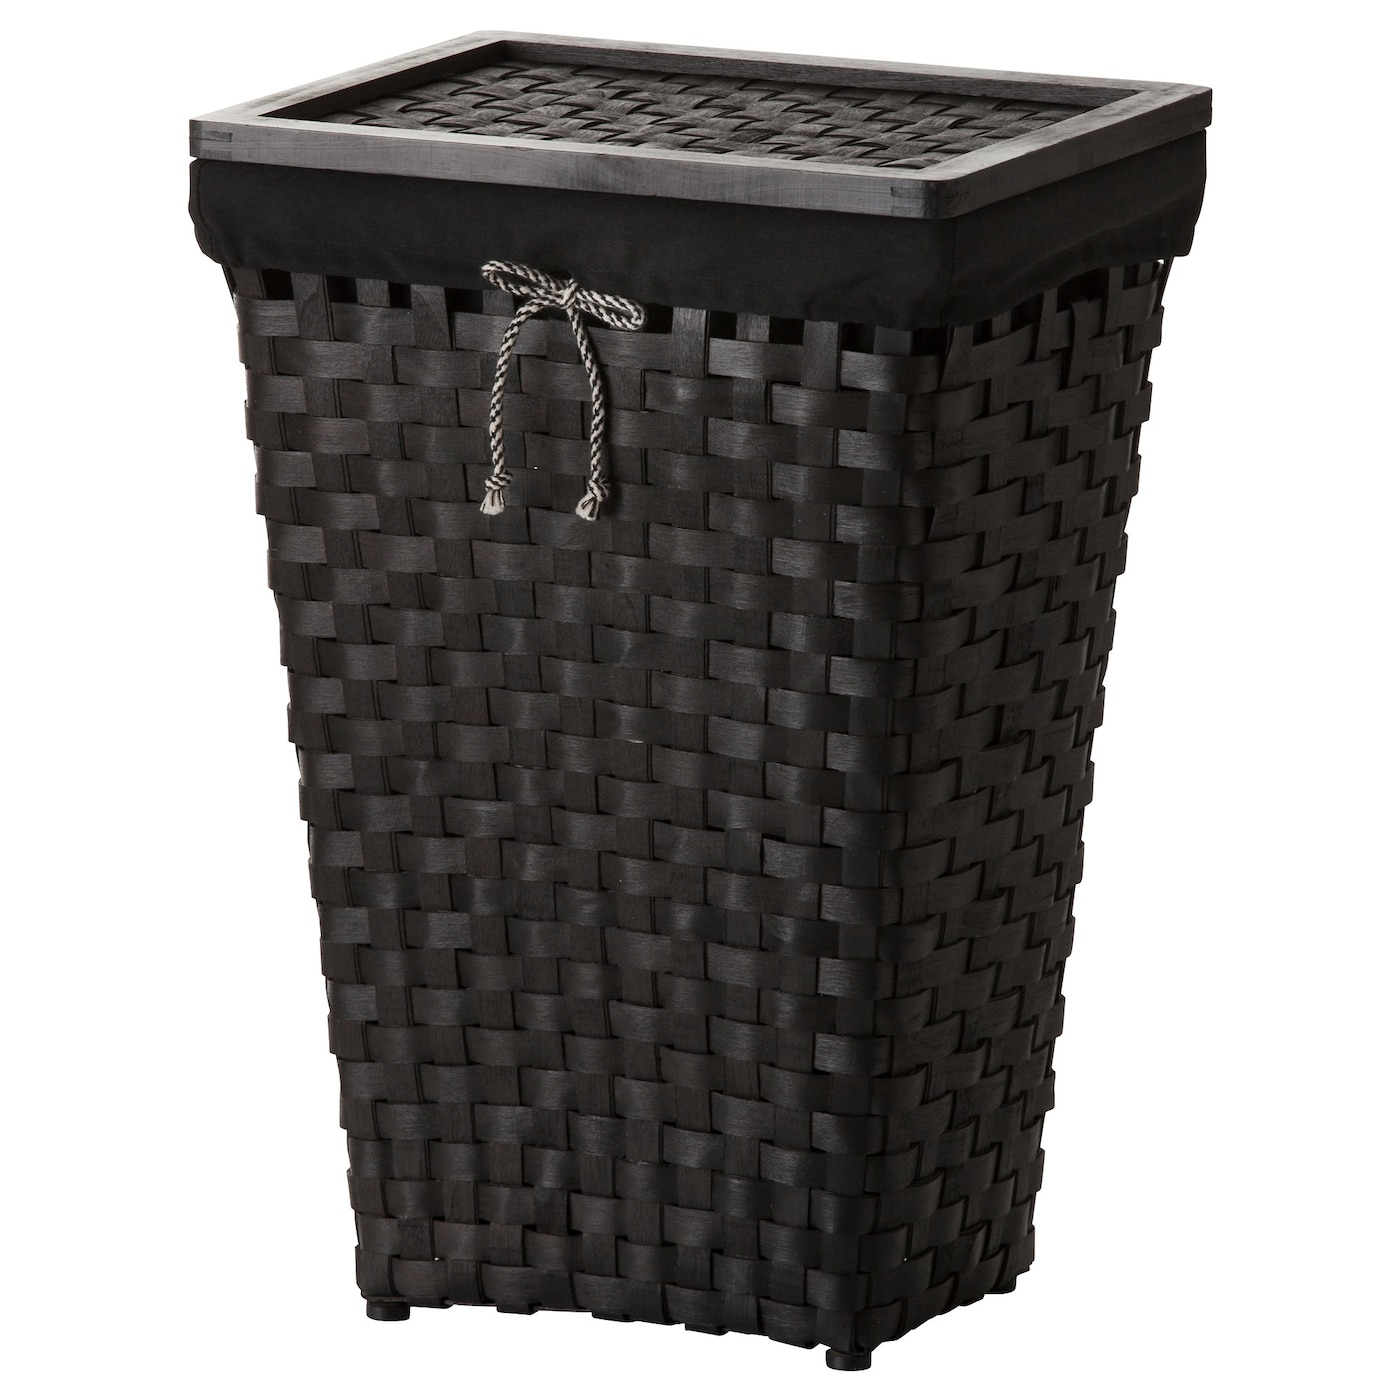 IKEA KNARRA laundry basket with lining The plastic feet protect the laundry basket from moisture.